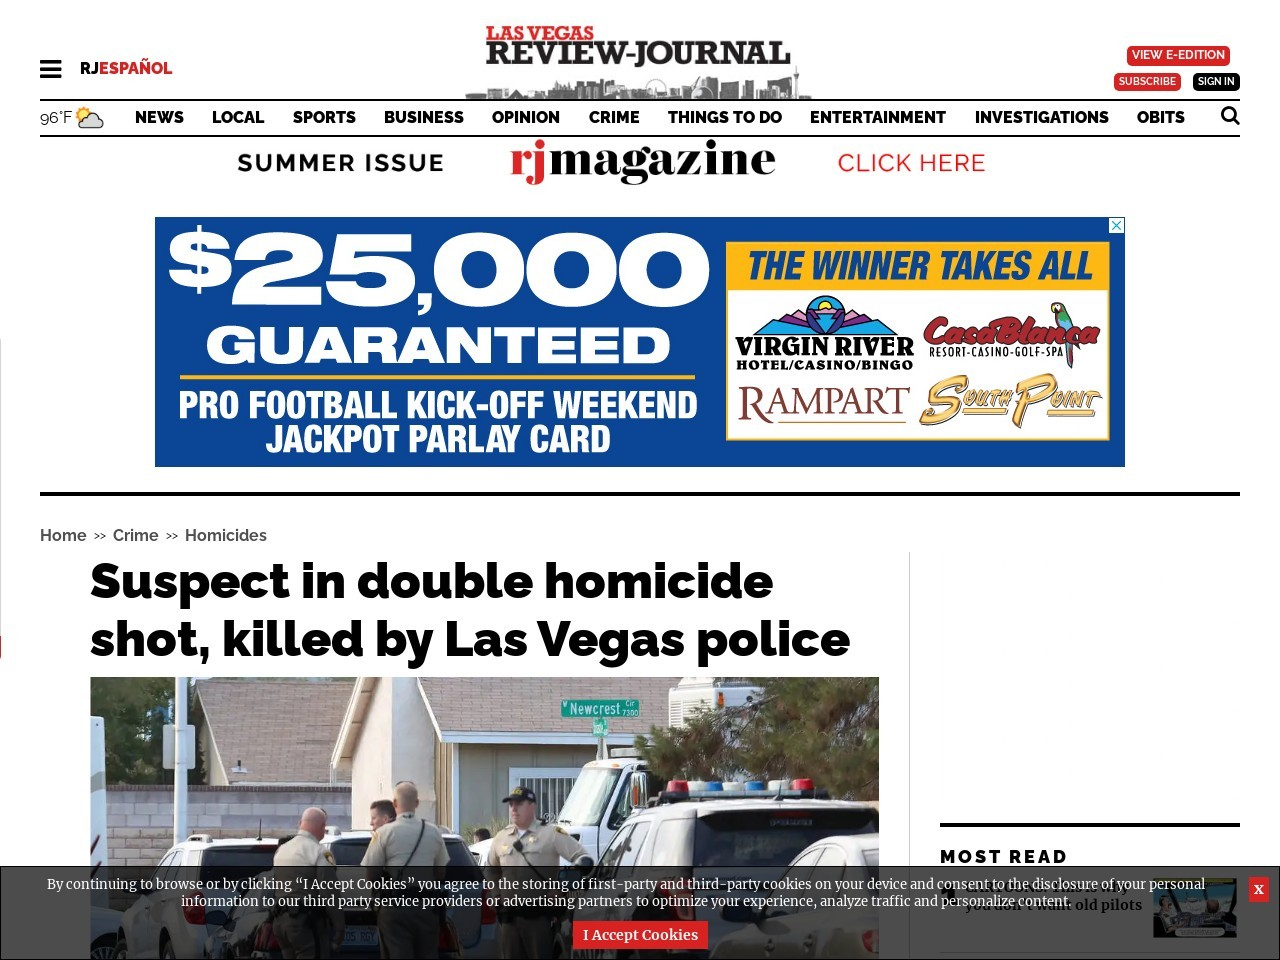 Suspect in double homicide shot, killed by Las Vegas police